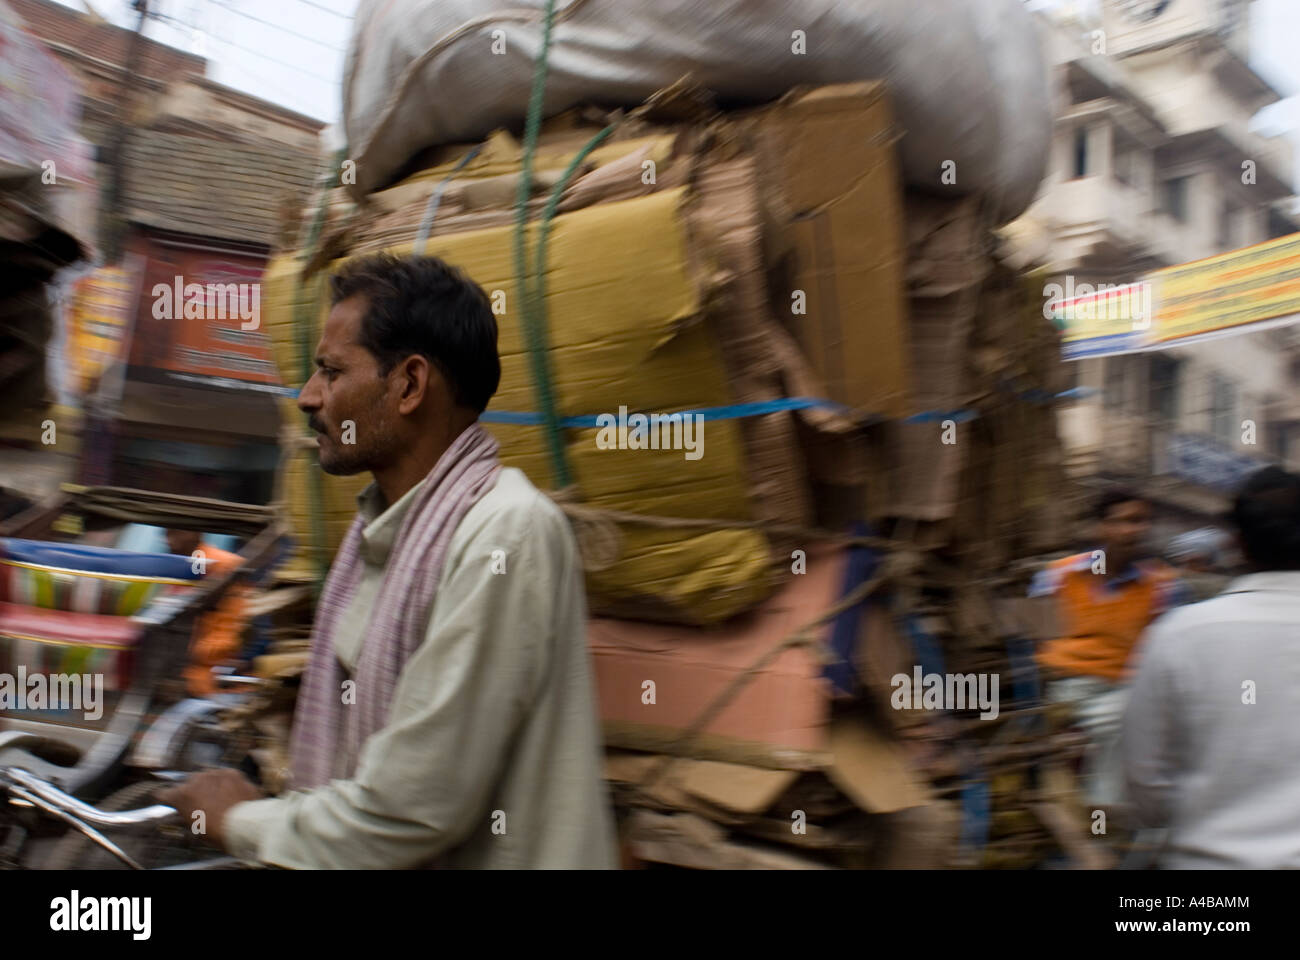 Bicycle rickshaw carrying huge stack of cardboard for recycling in Varanasi - Stock Image